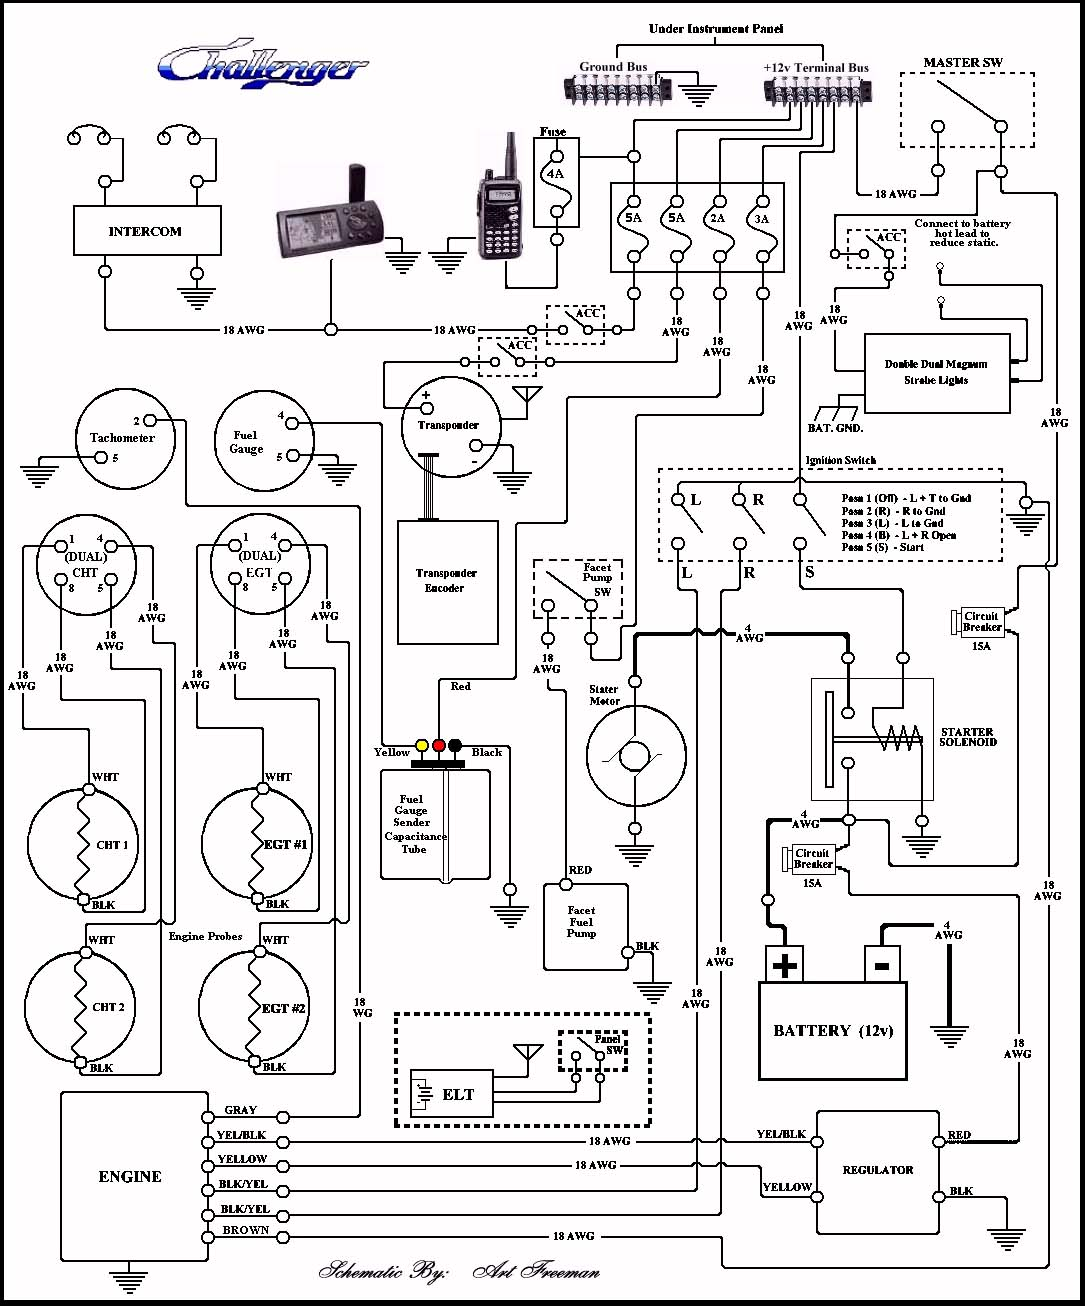 Schem_Analog basic panel wiring diagram wiring diagram simonand basic wiring diagram at panicattacktreatment.co